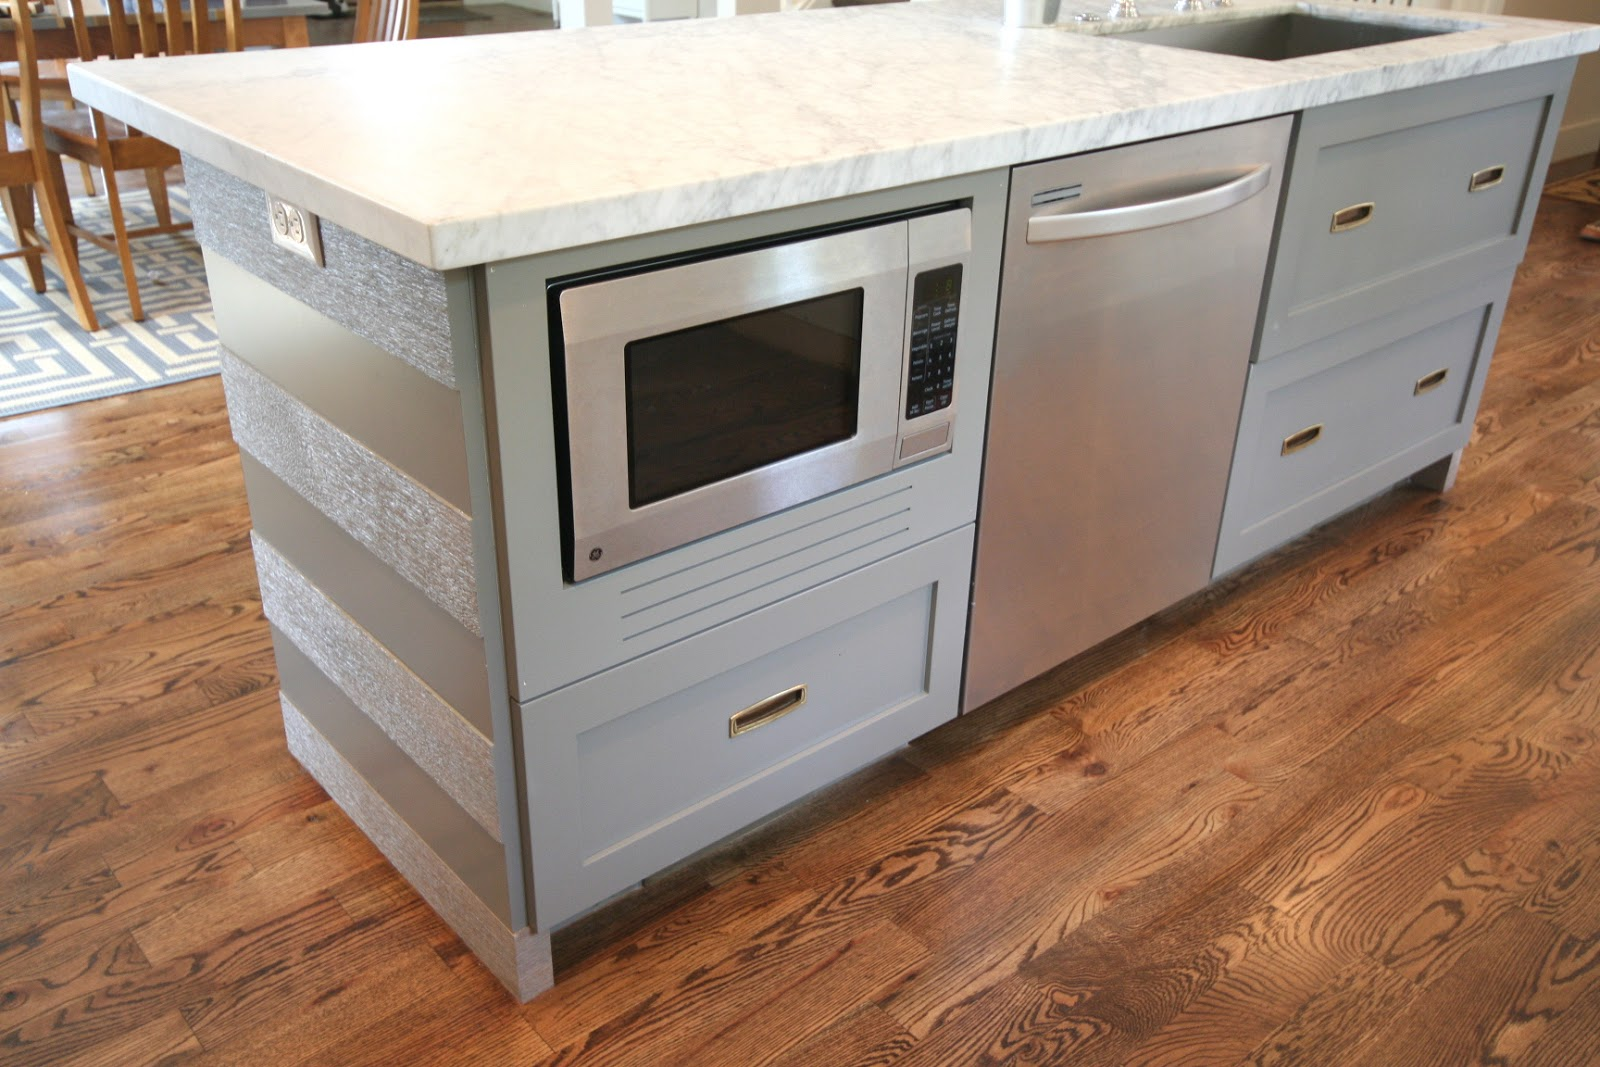 Design dump how to fake a built in microwave for Microwave ovens built in with trim kit